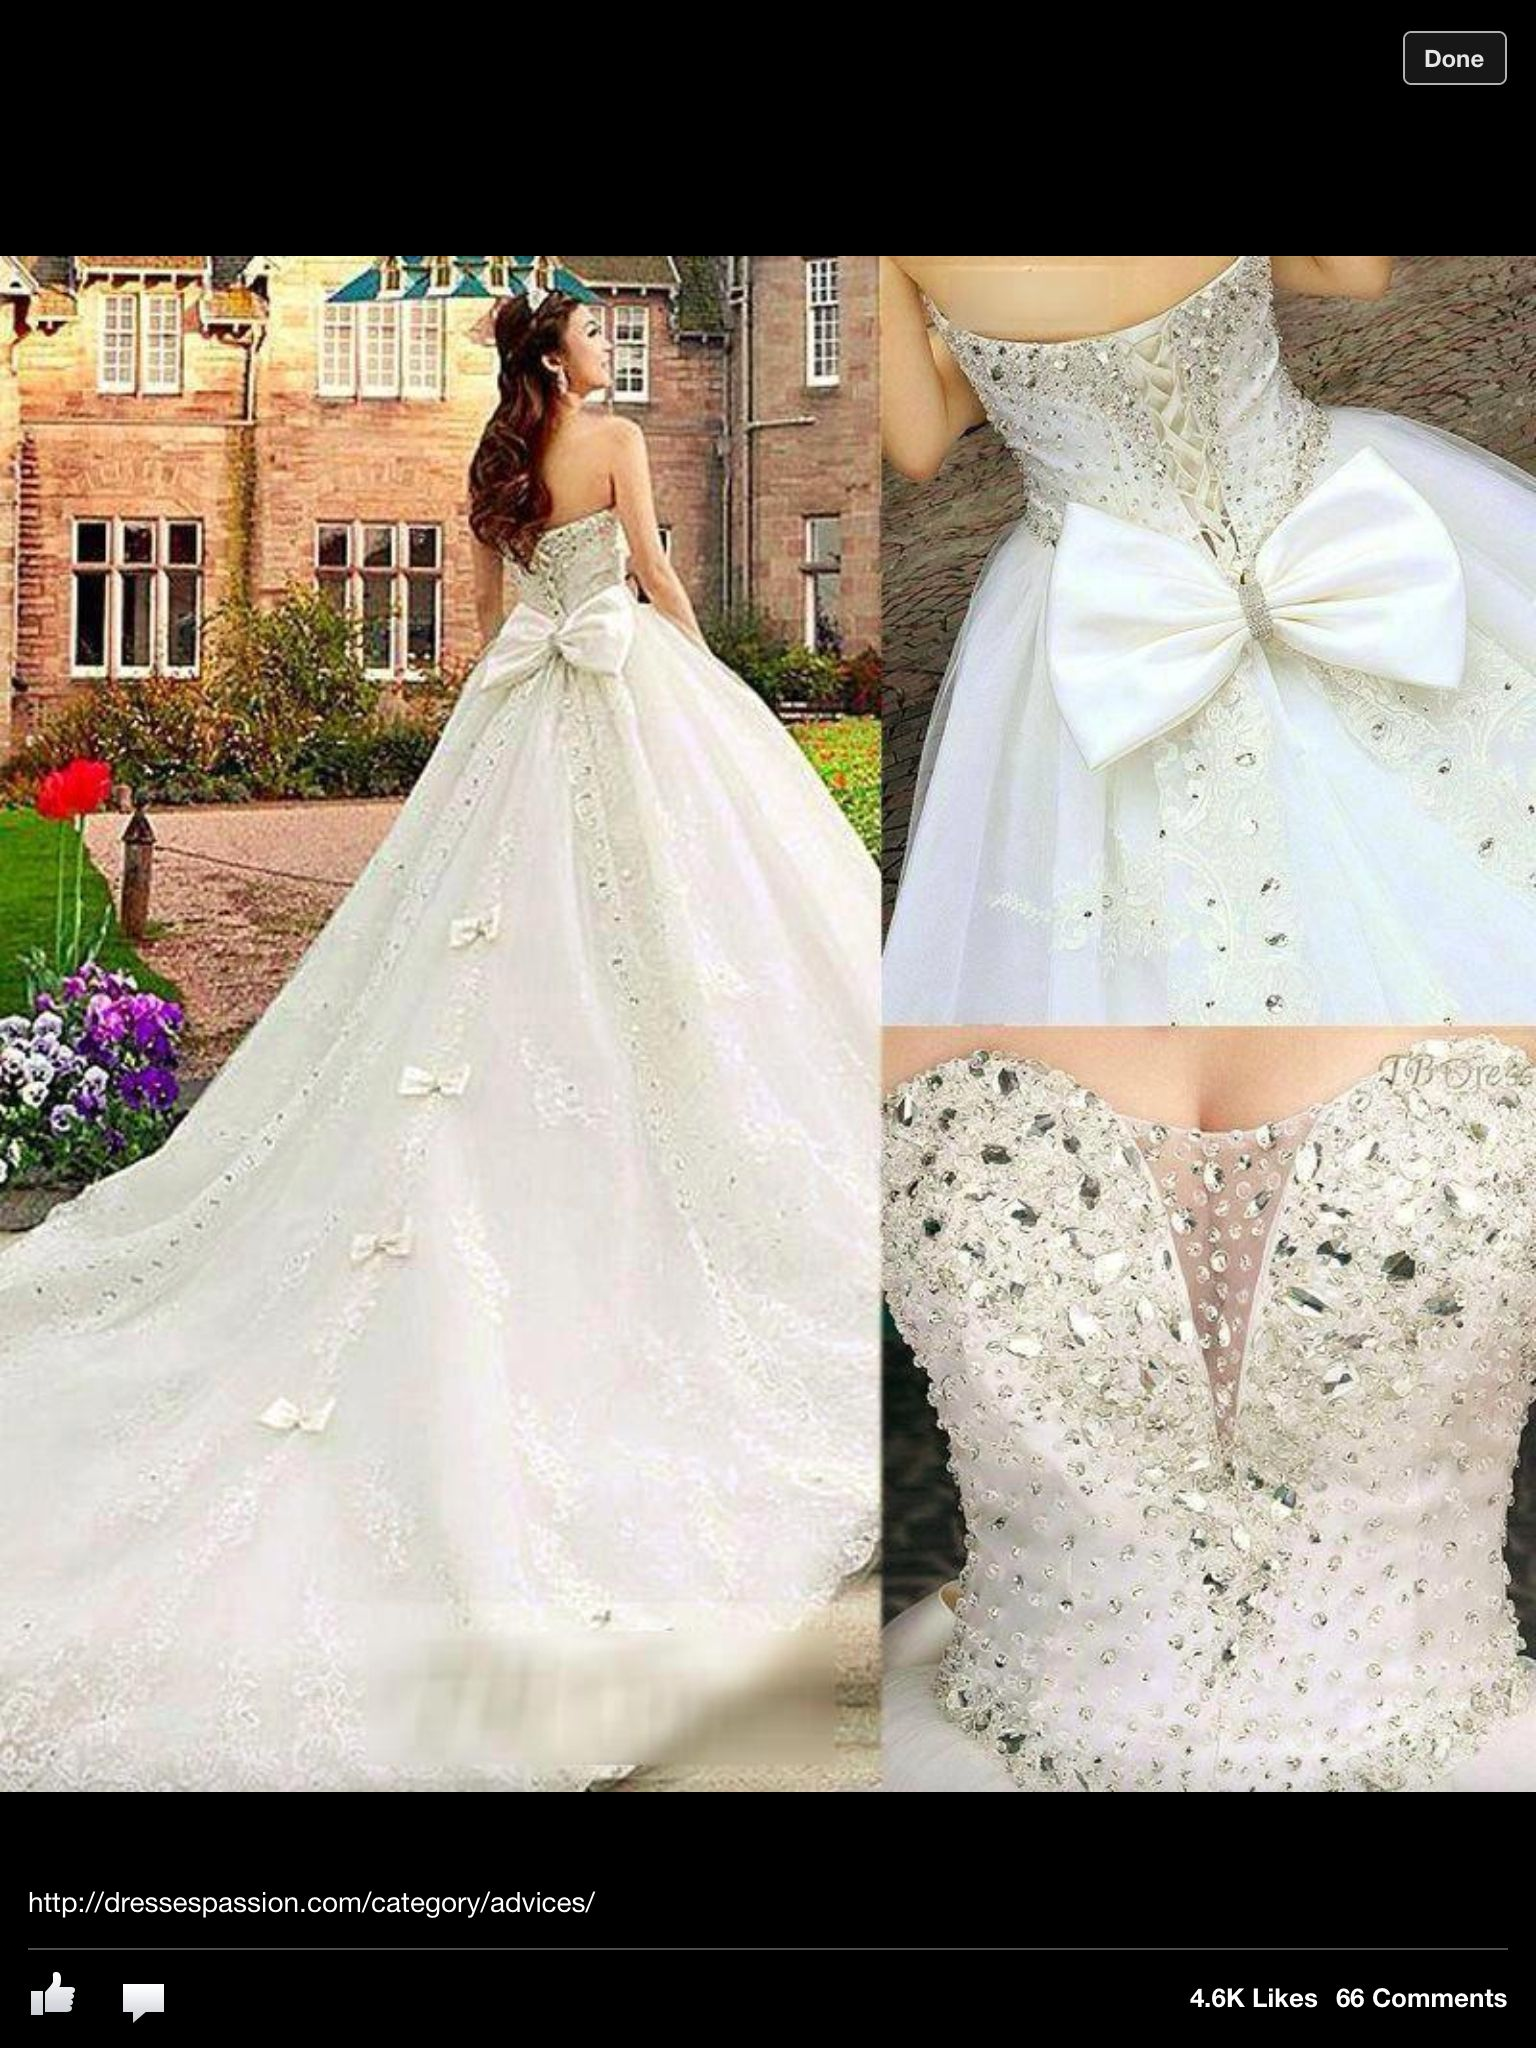 Blinged out wedding dress  Very blinged bow diamonds dress gypsy style  Gypsy Bling